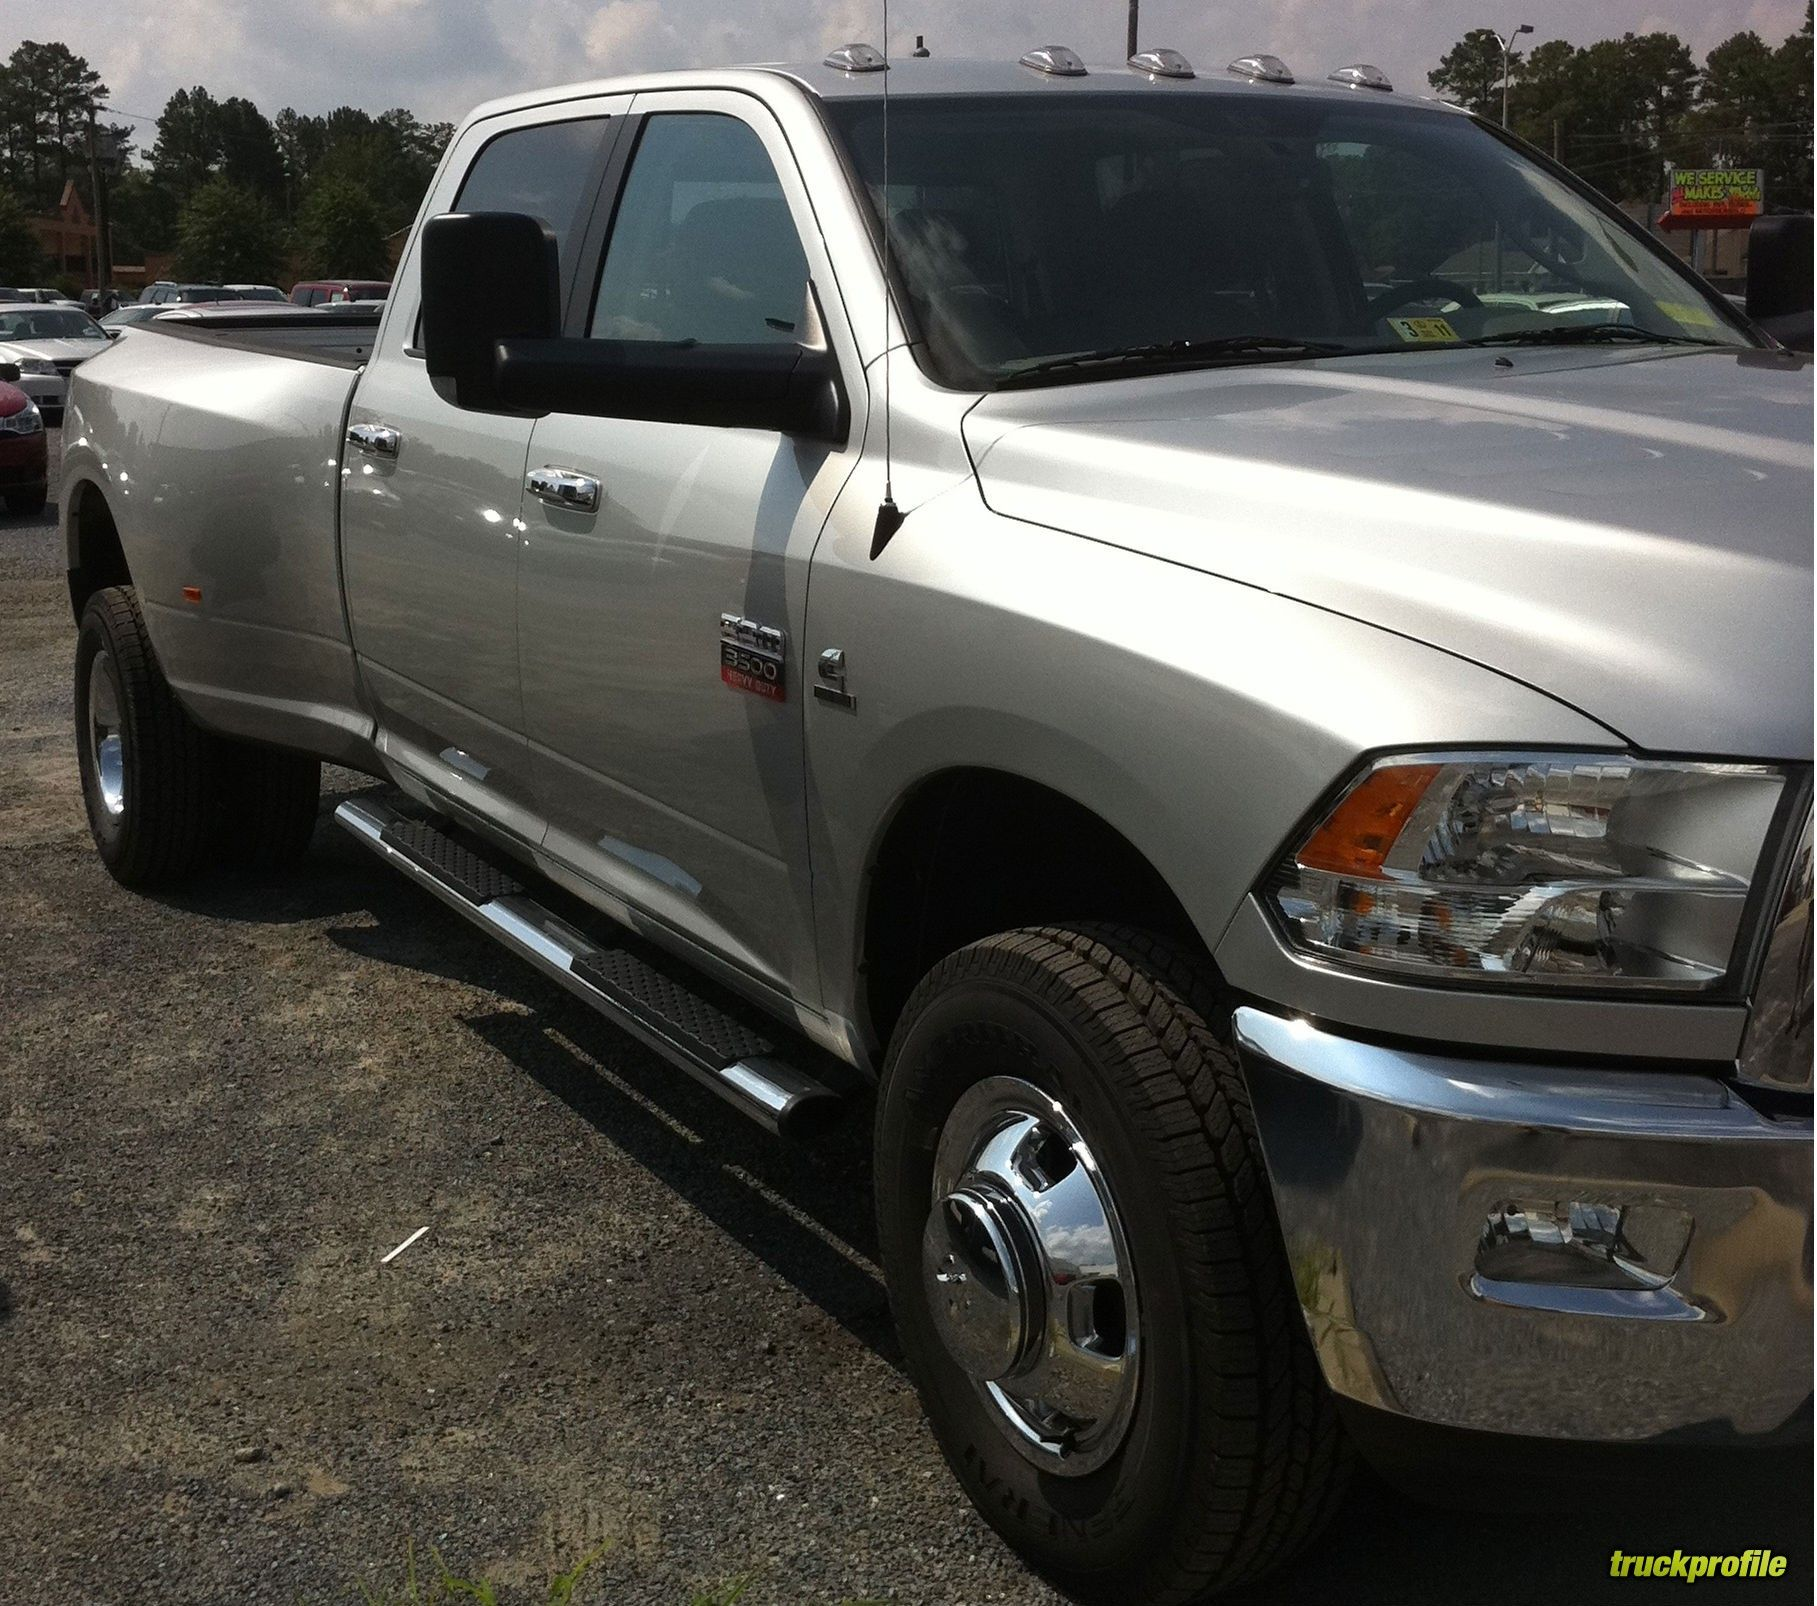 Dodge ram pickup 2500 review research new used dodge ram pickup 2500 models